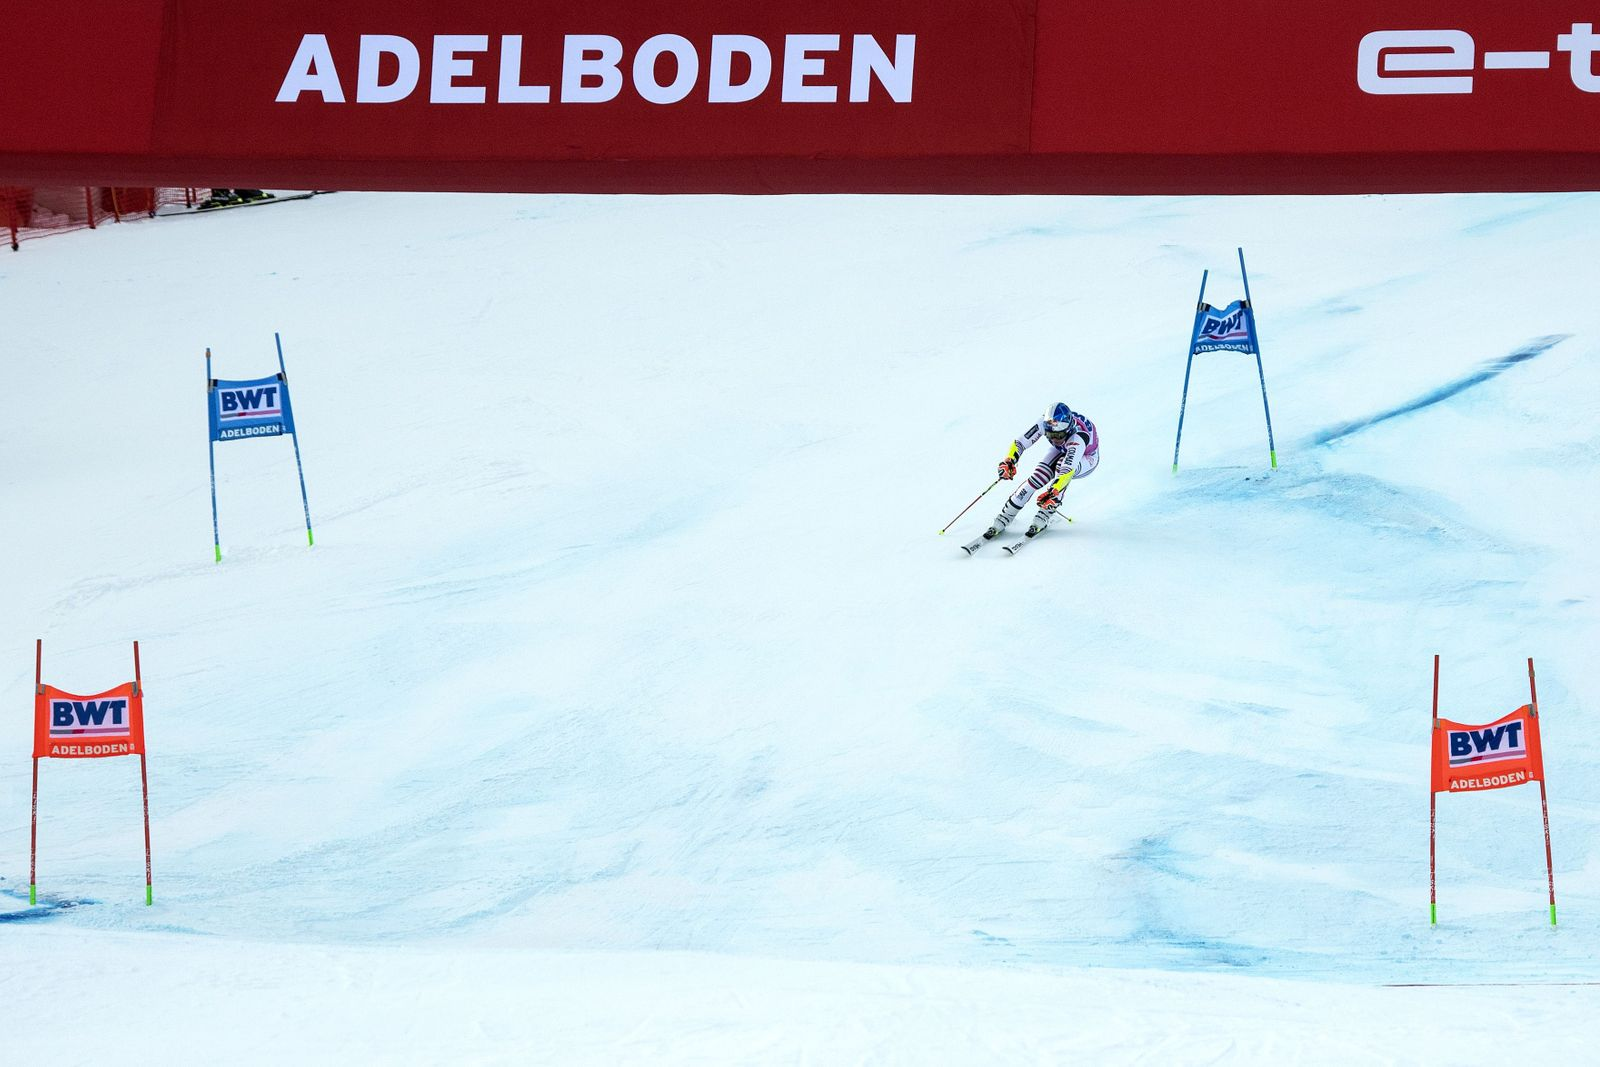 FIS Alpine Skiing World Cup in Adelboden, Switzerland - 09 Jan 2021